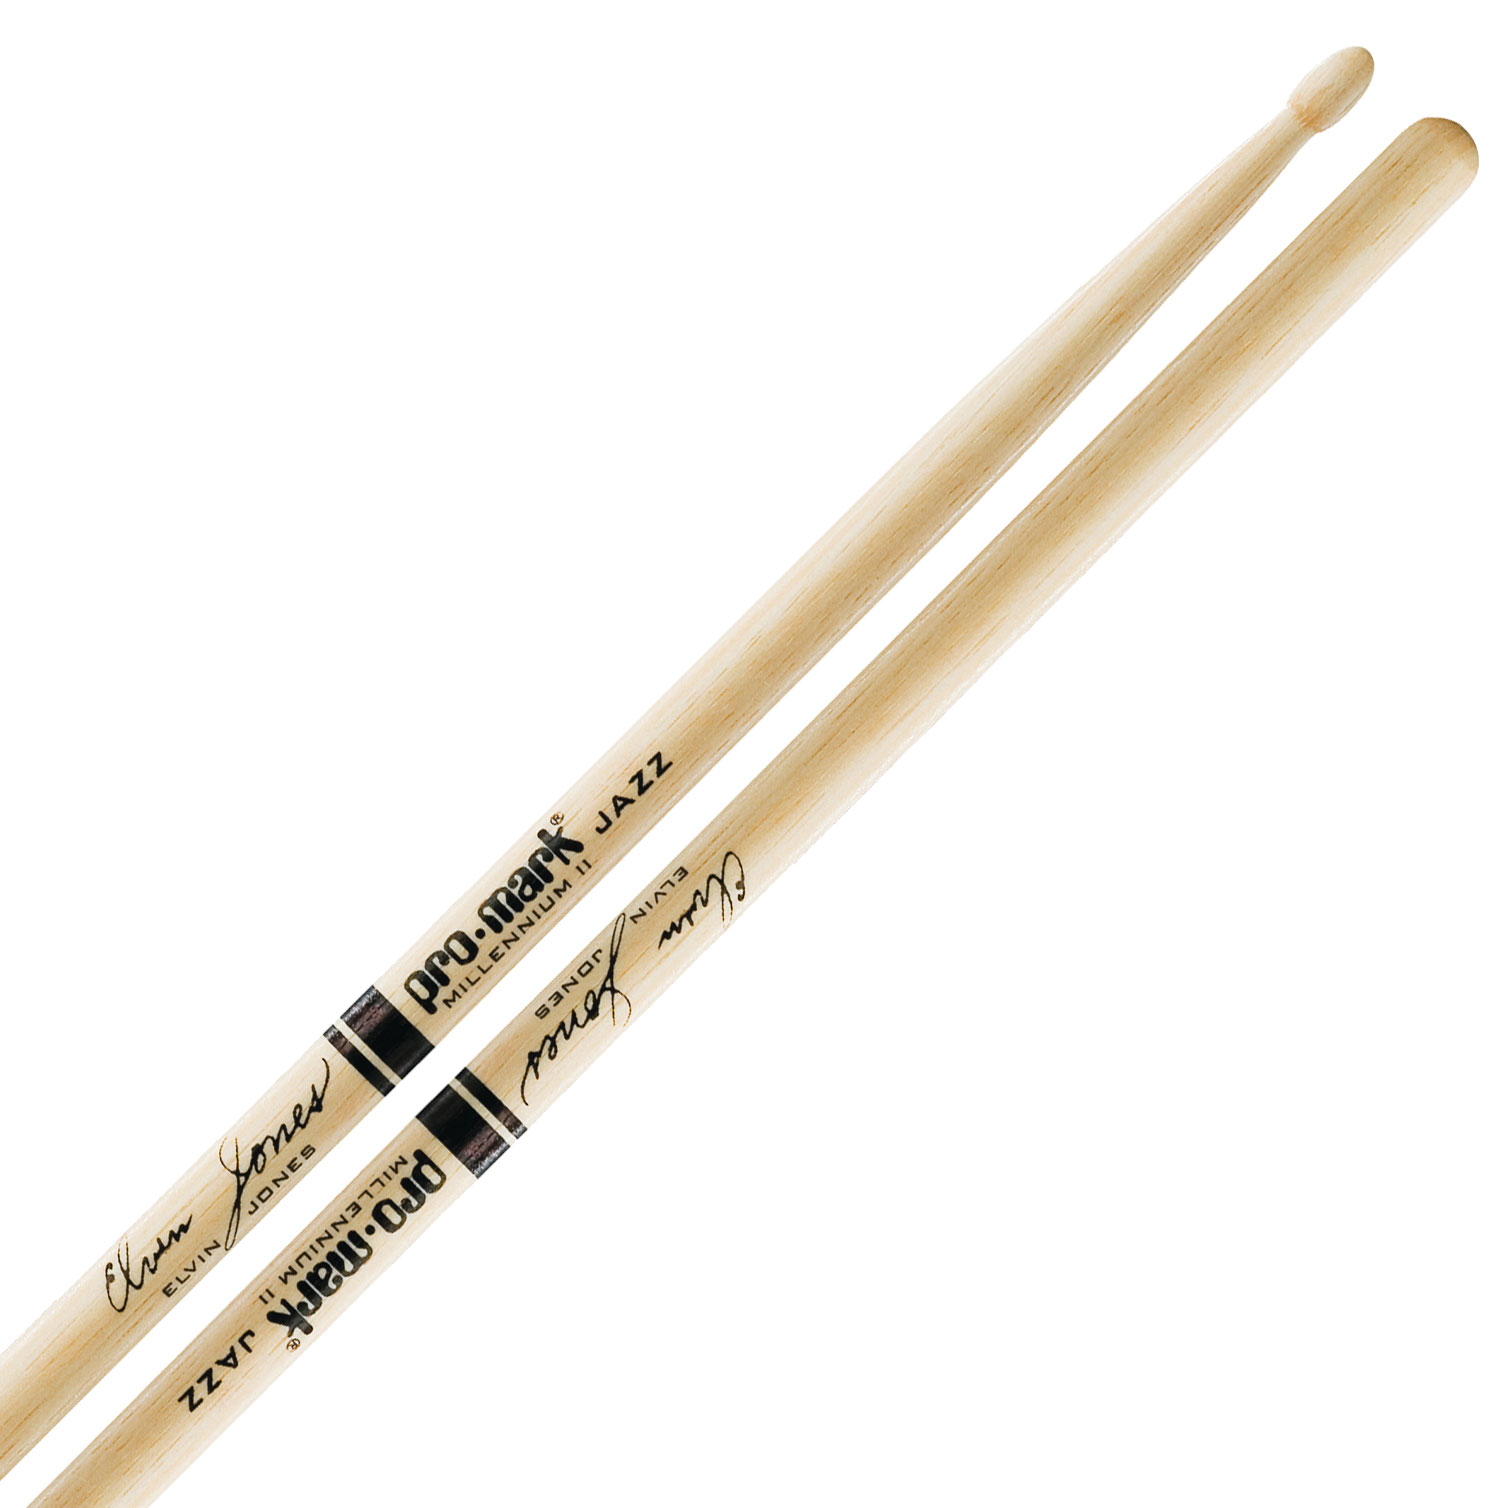 Promark Elvin Jones Signature Drumsticks